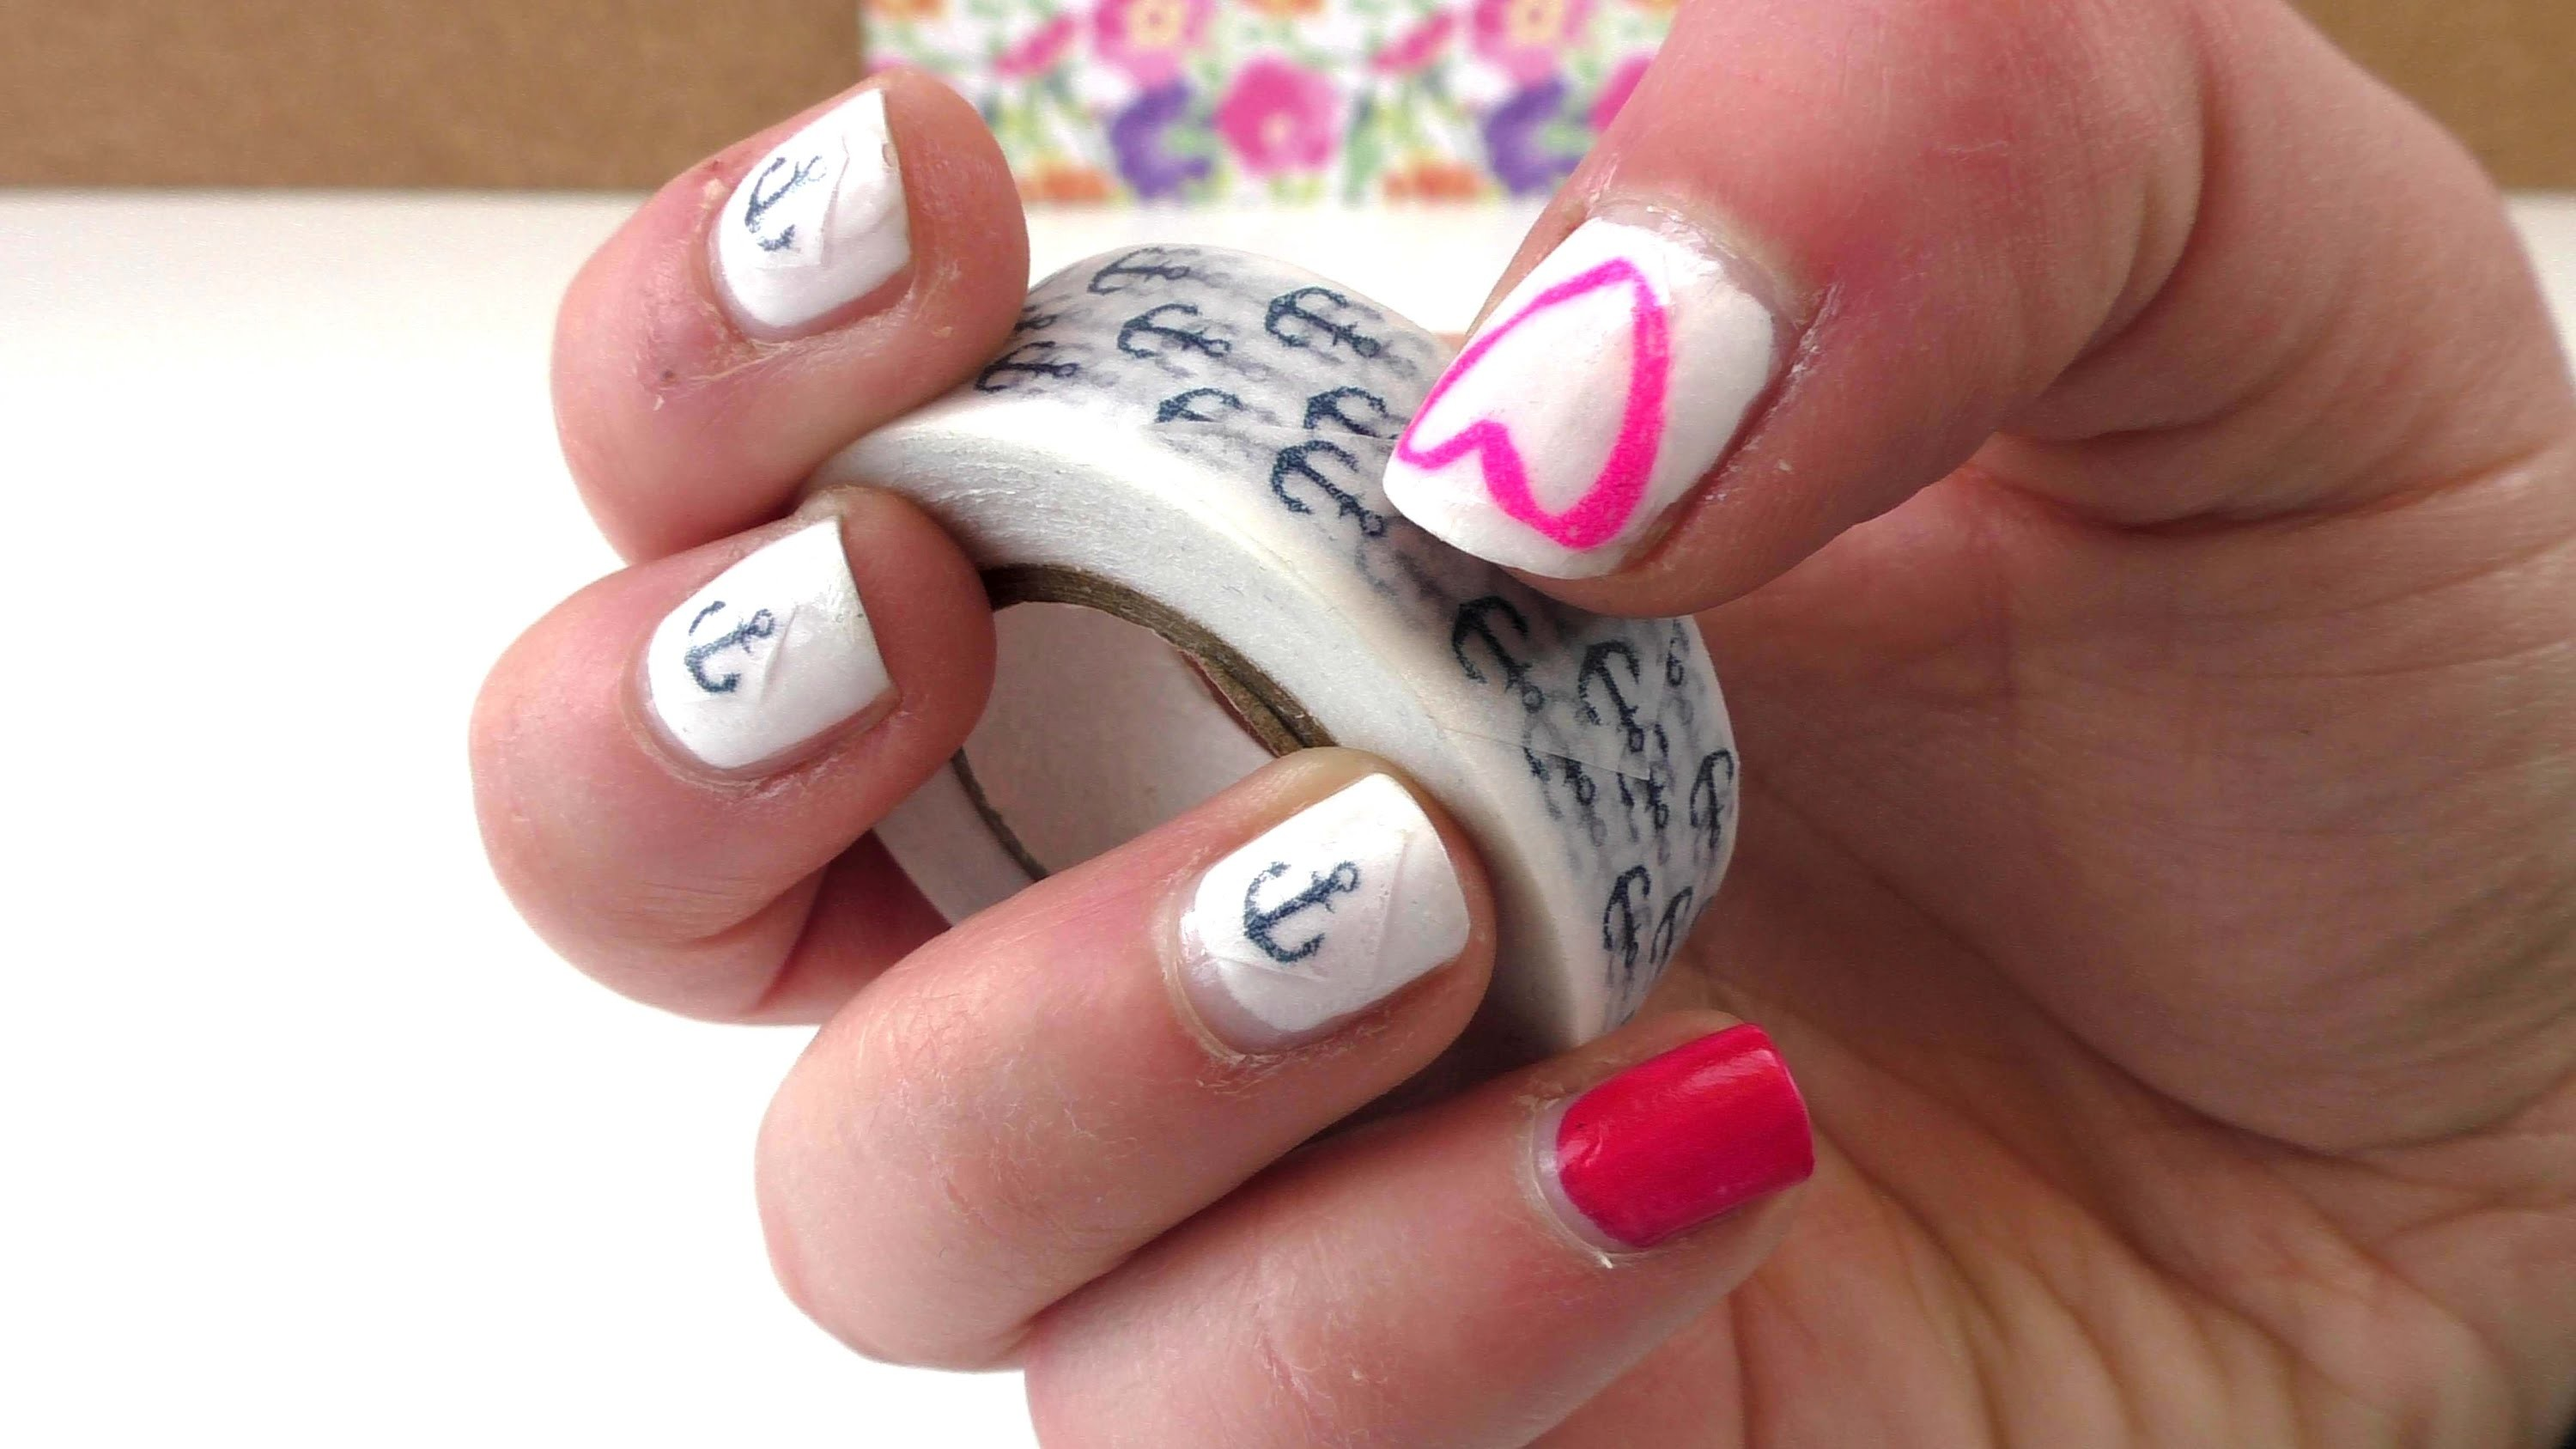 Nail Design mit Washi Tape - selber machen DIY Fingernägel. Washi Tape Ideen. Nageldesign